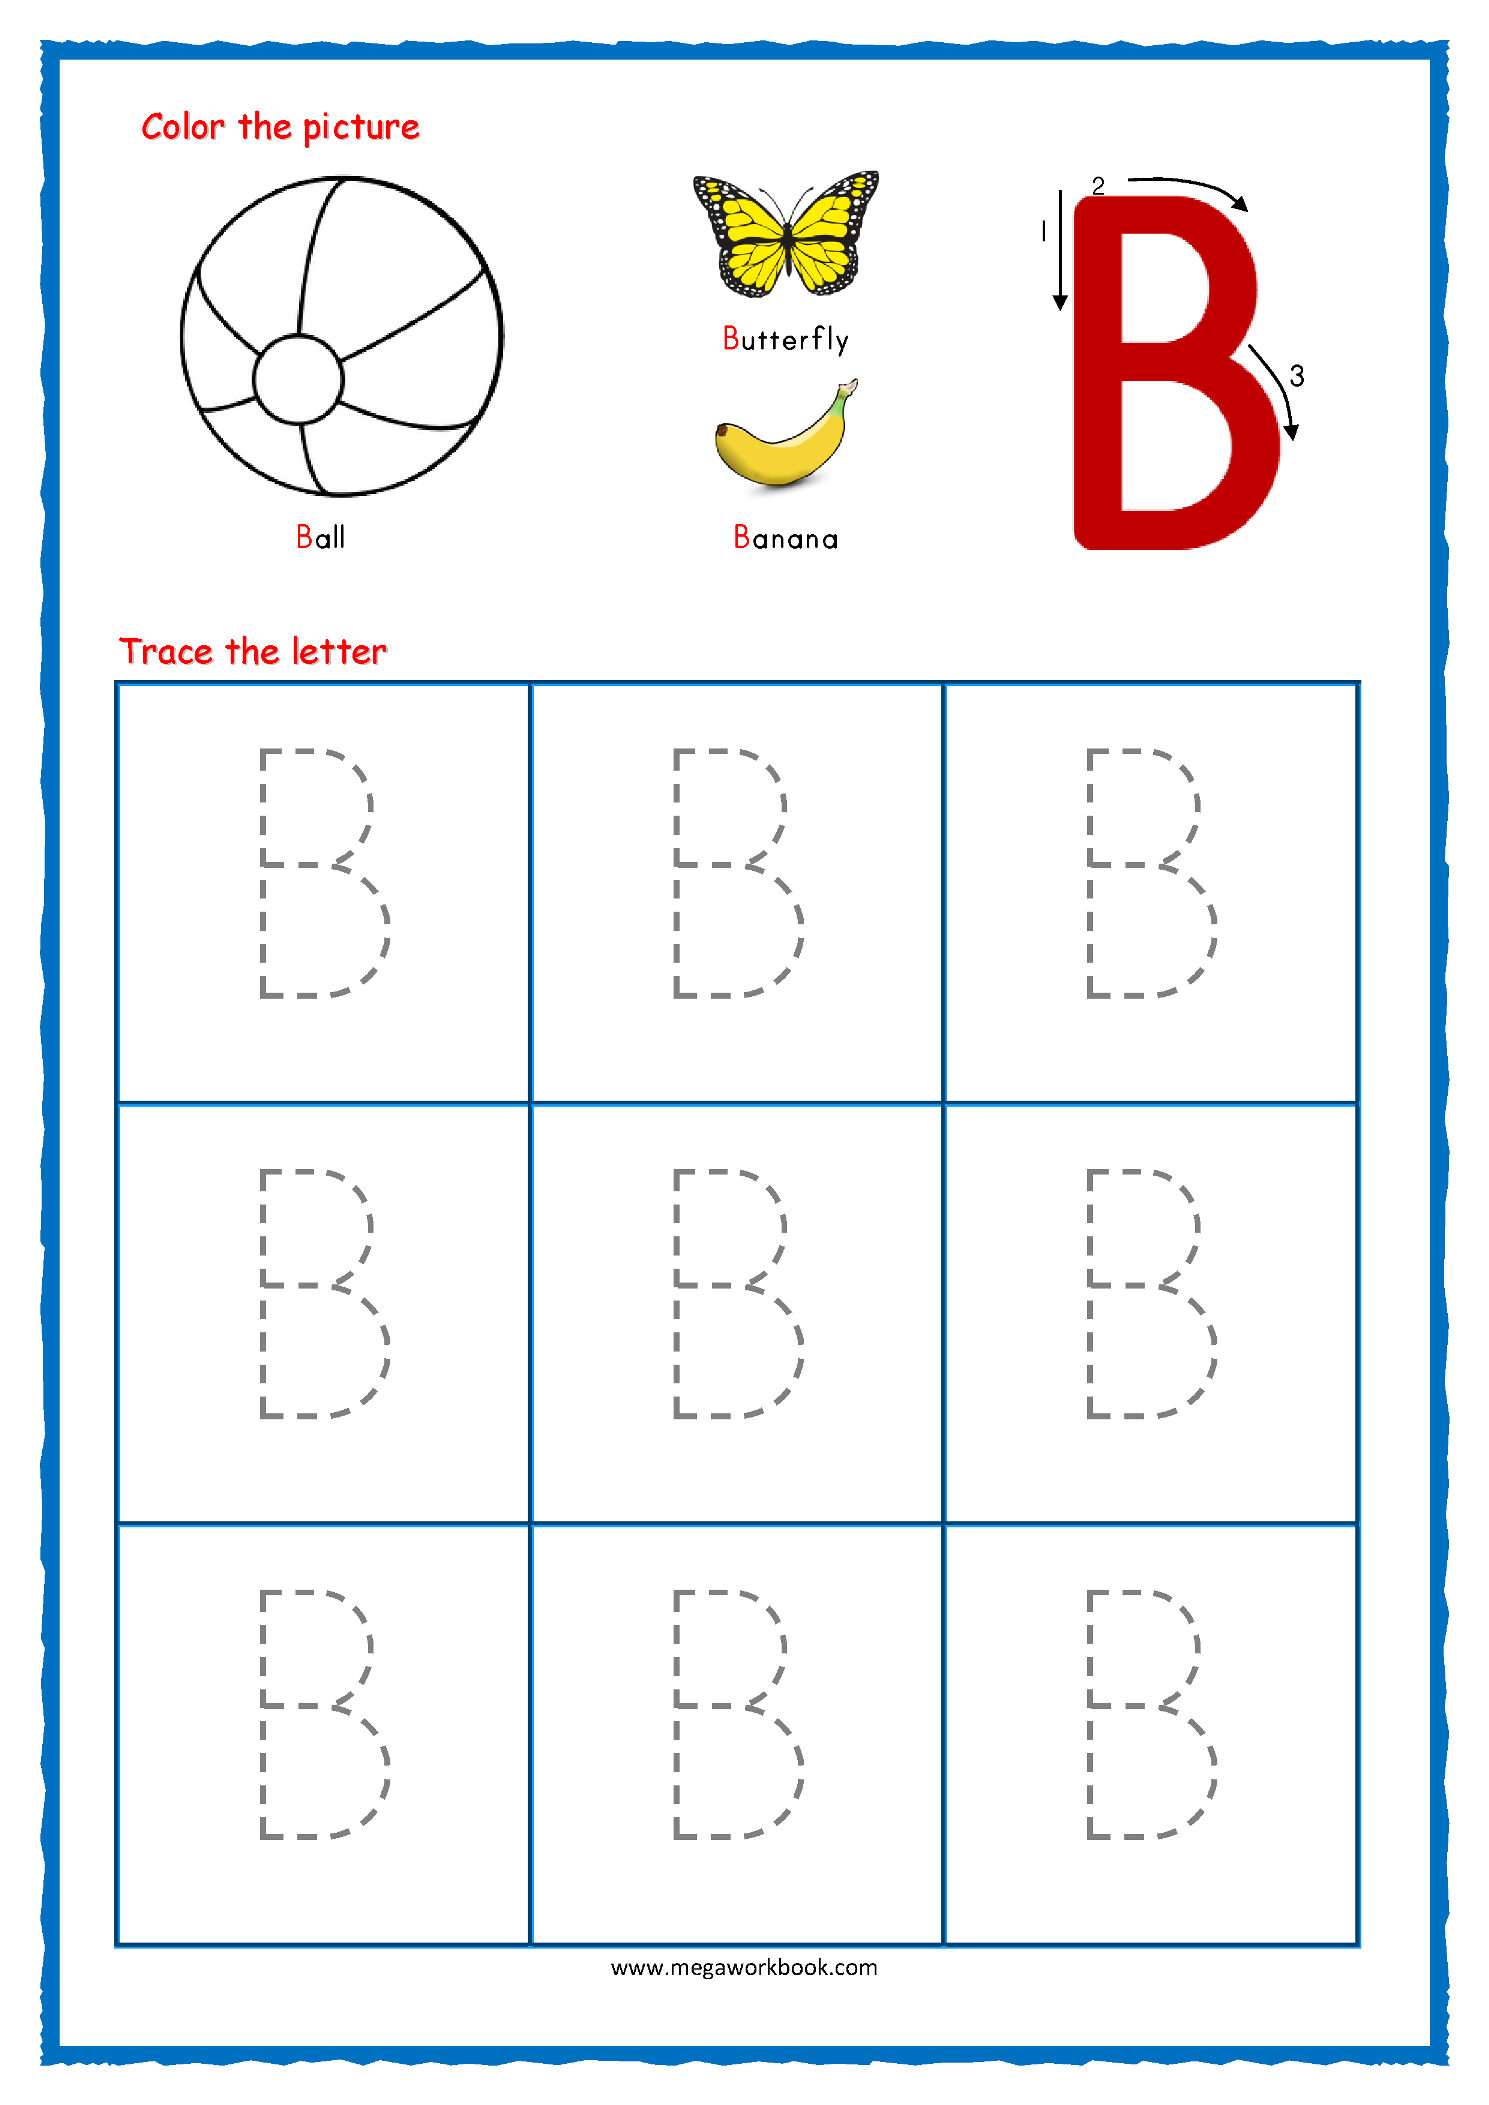 Tracing Letters - Alphabet Tracing - Capital Letters throughout Letter D Worksheets For Pre K